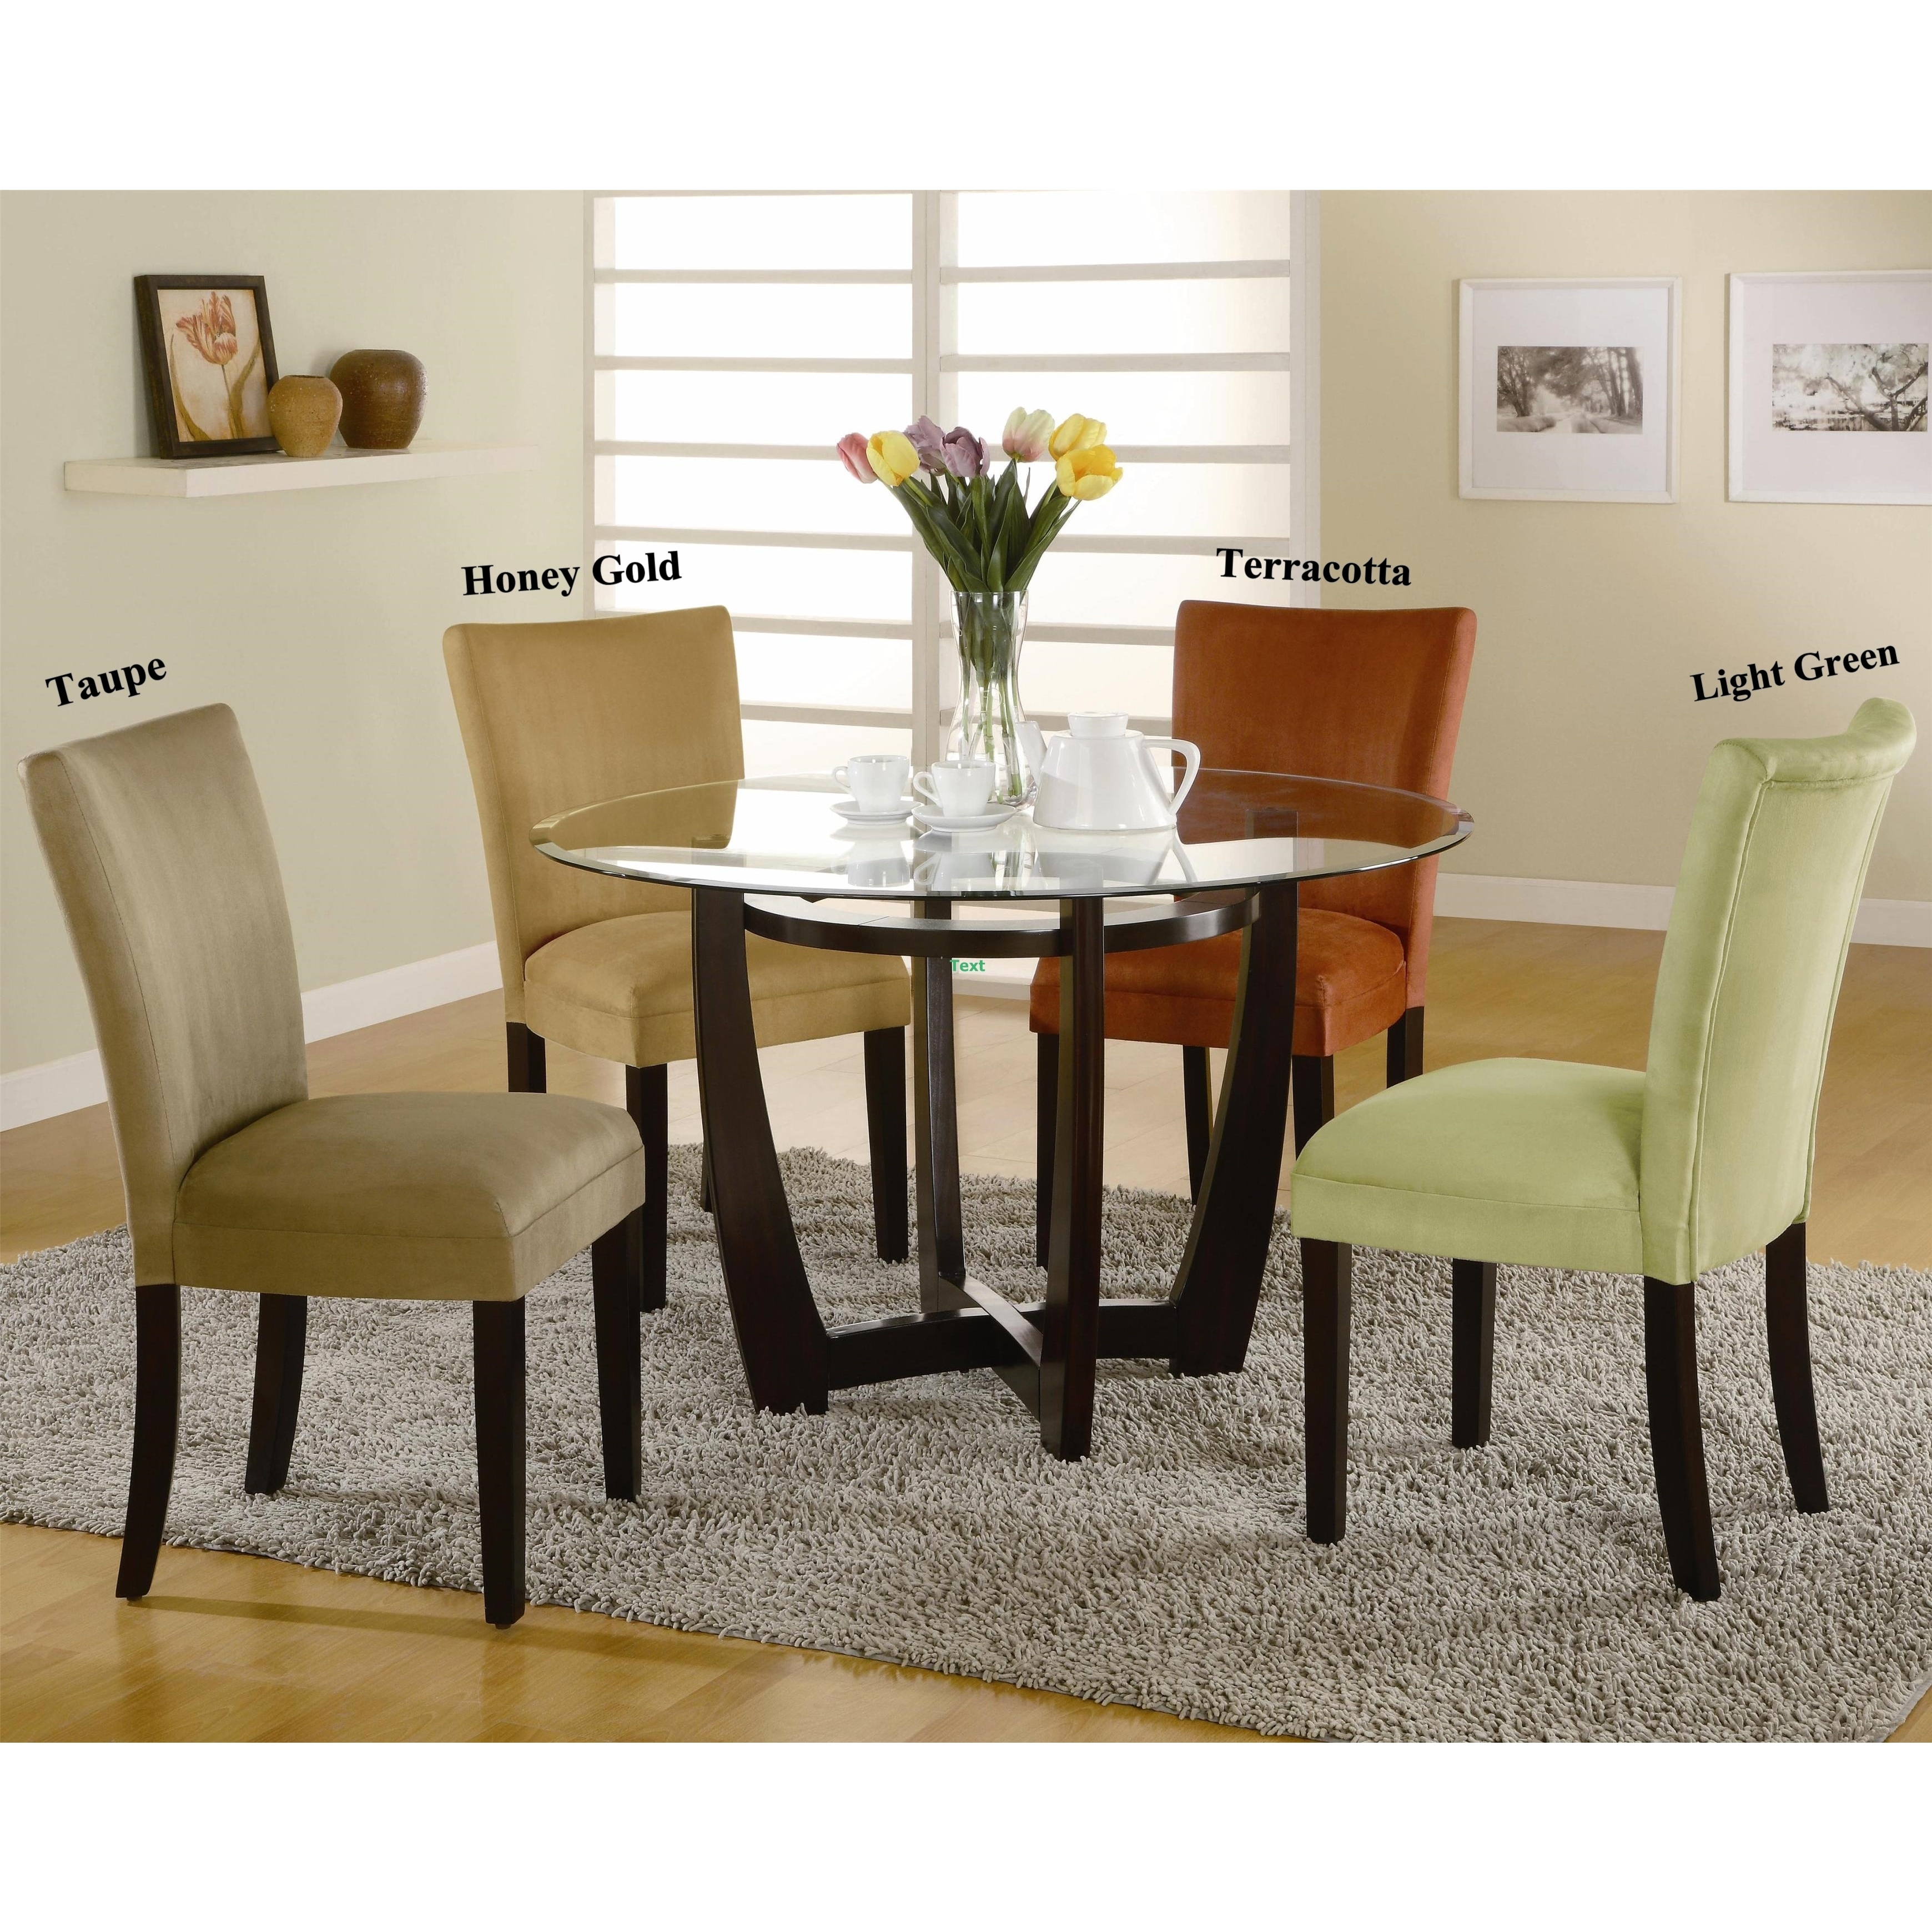 Taupe Kitchen Dining Room Sets Online At Our Best Bar Furniture Deals